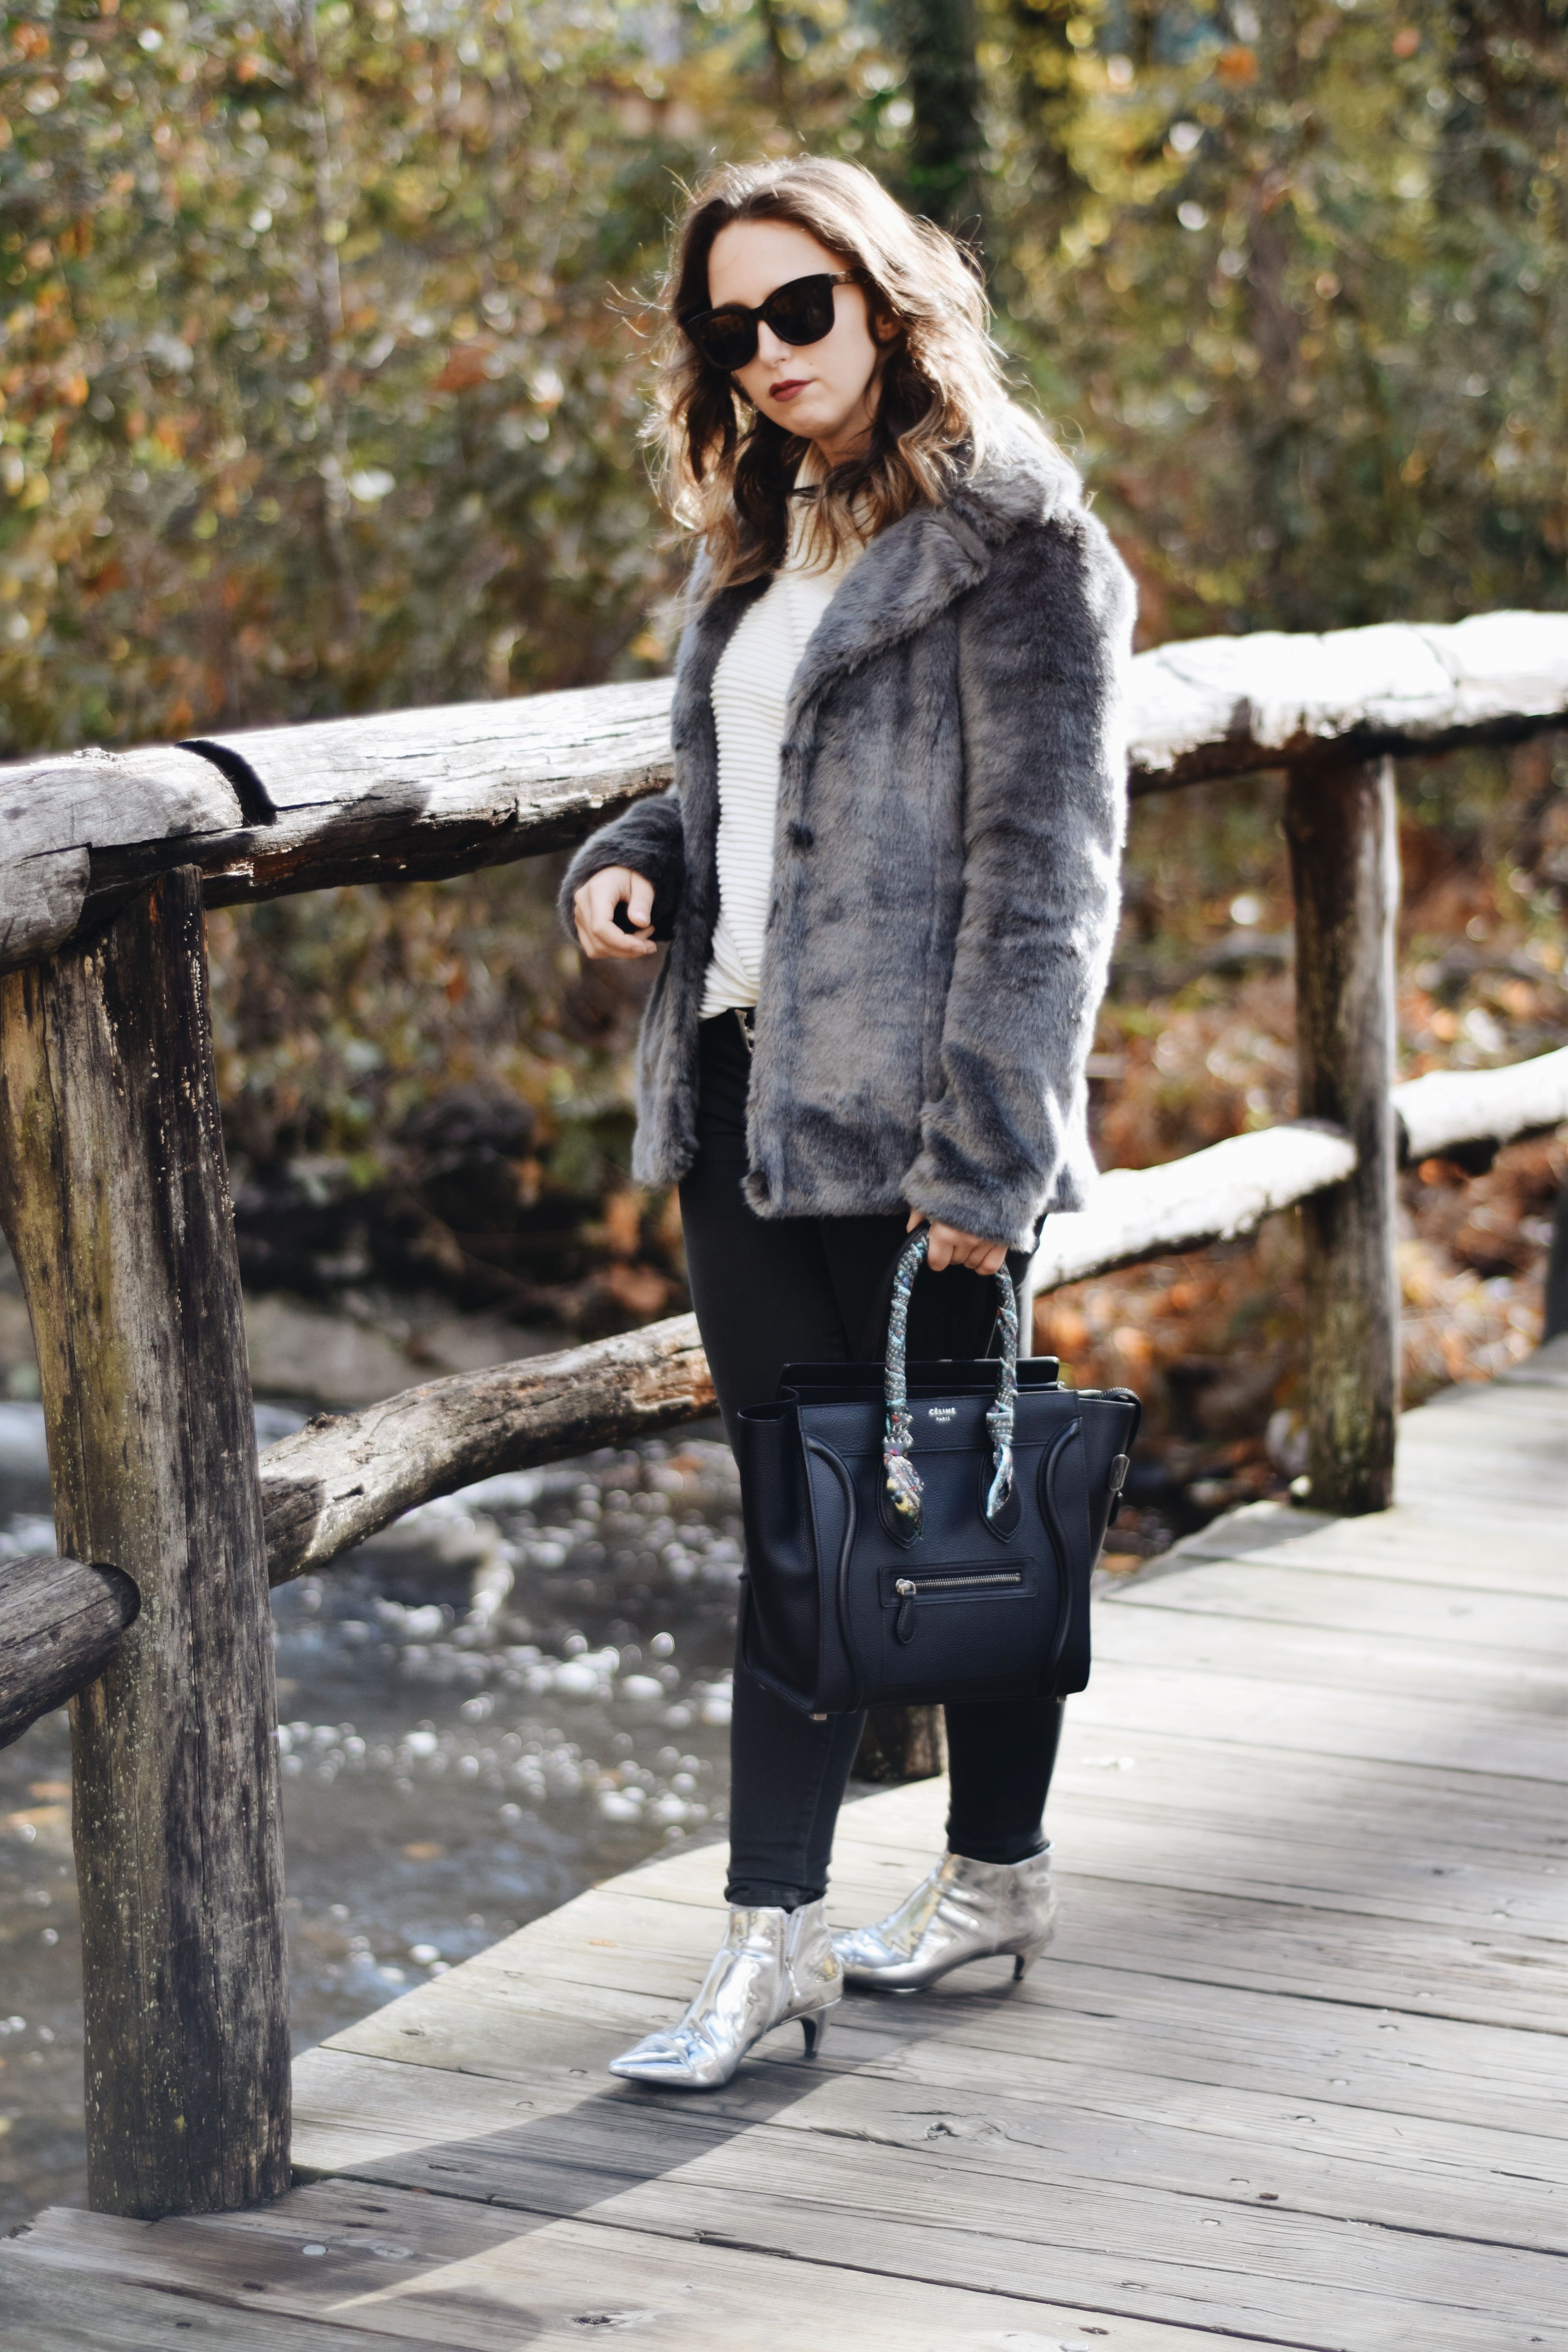 Style-faux fur coat-unreal fur-outfit-ny-Street style-blogger-silver booties